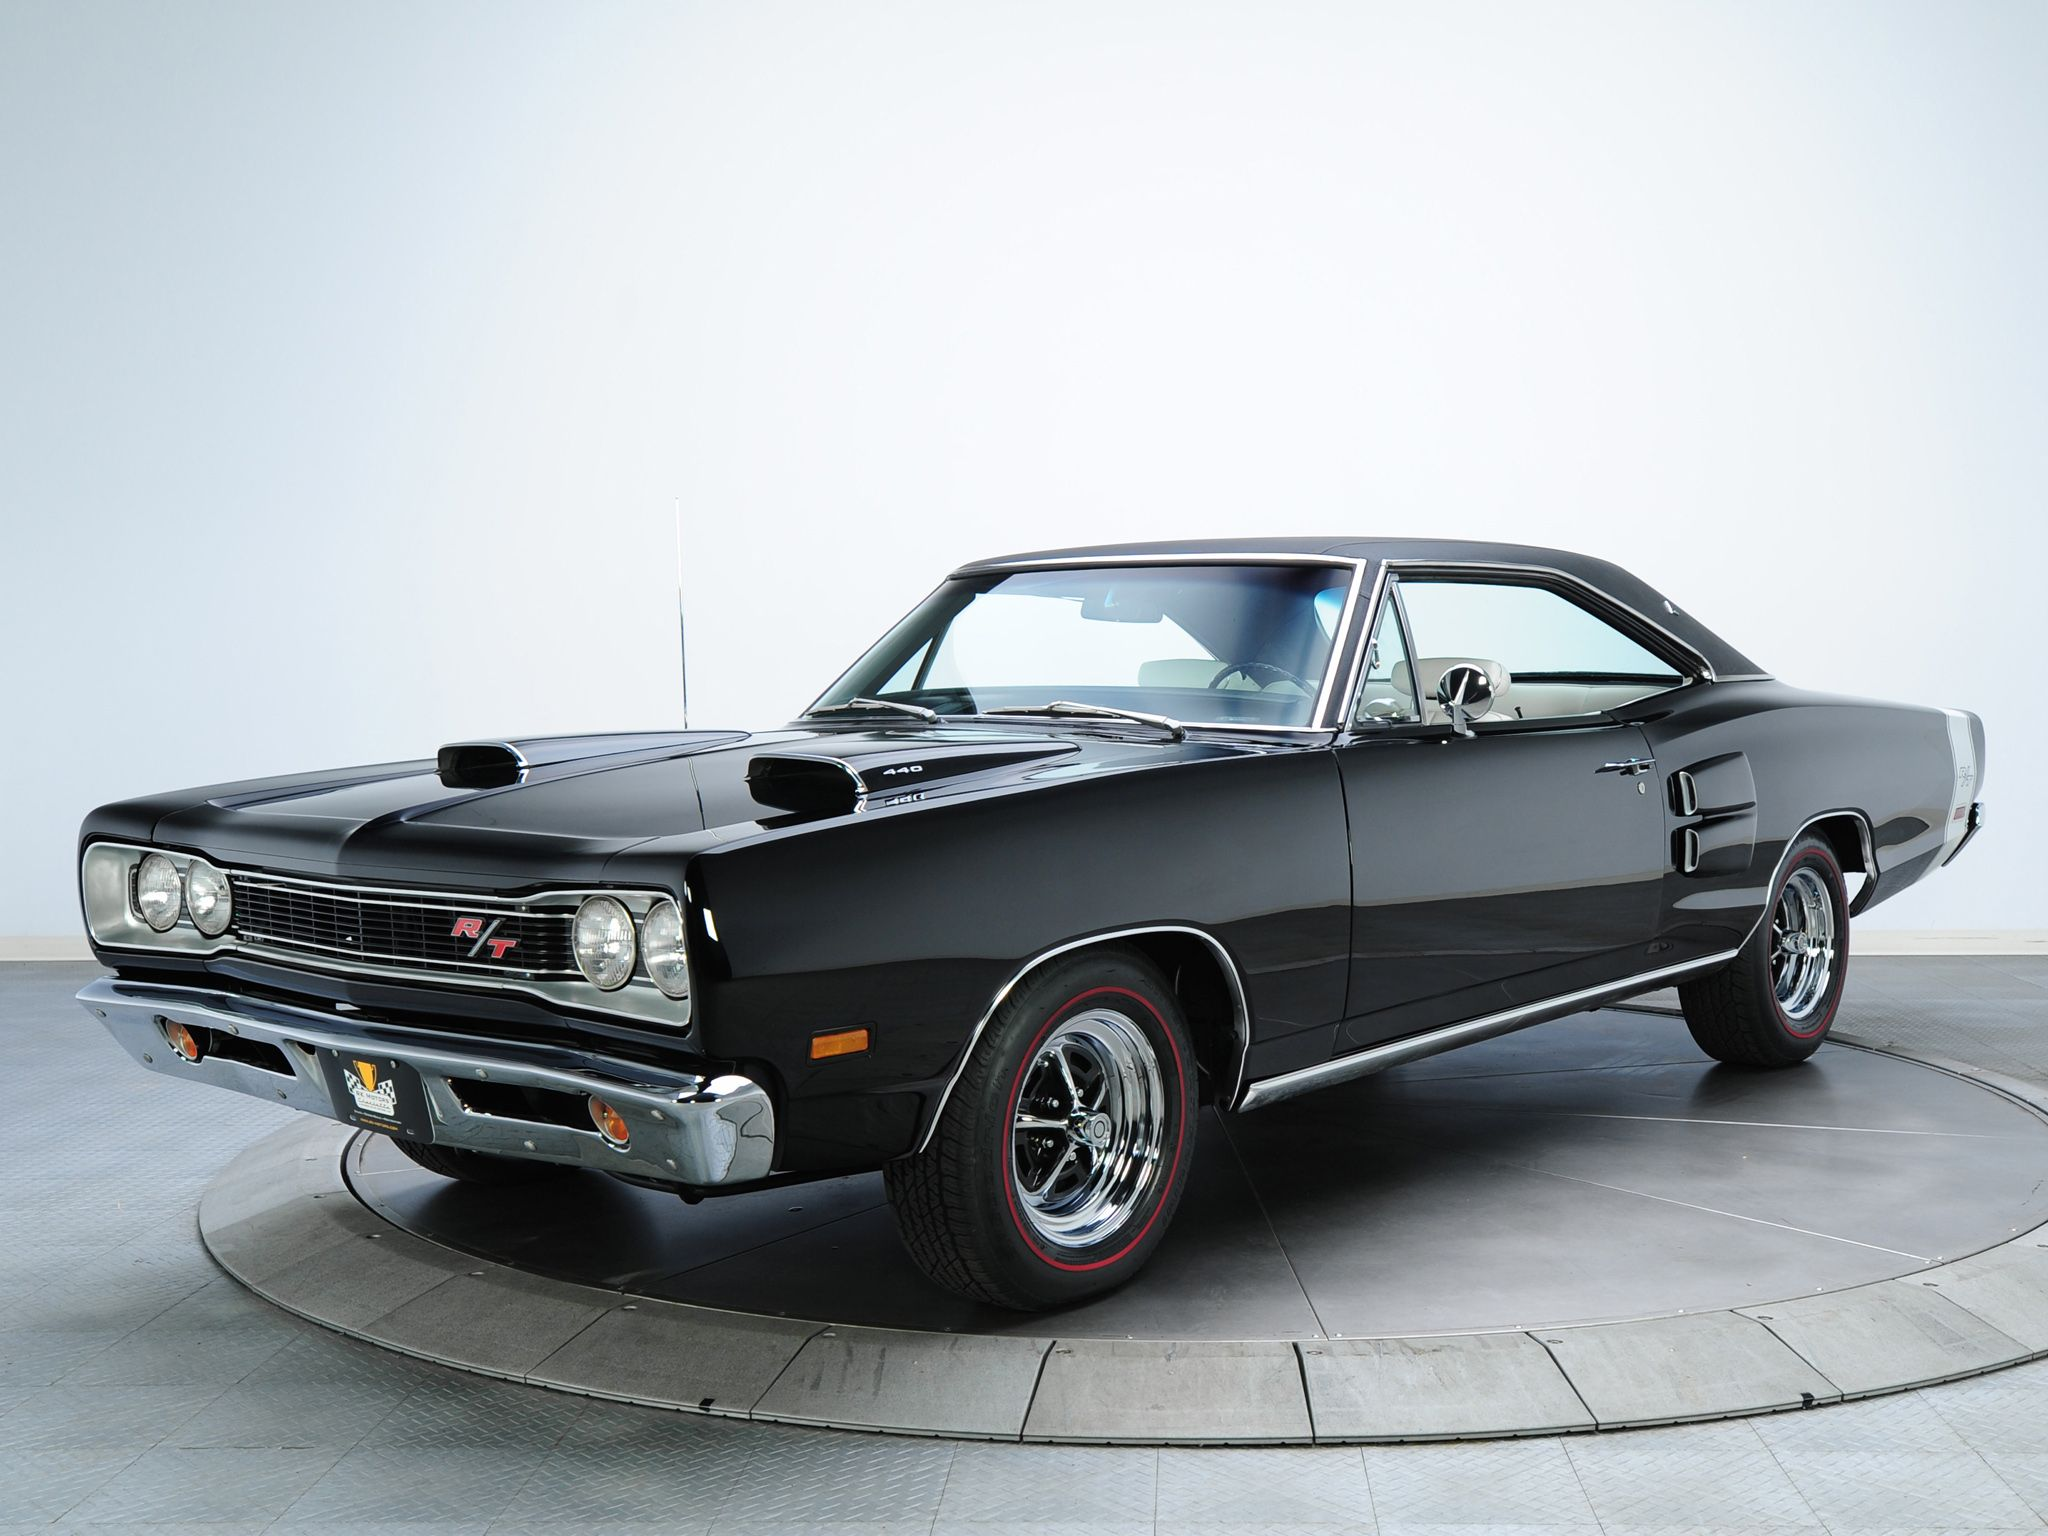 Overhaulin chris jacobs coronet dodge google search little old lady from pasedena pinterest dodge mopar and cars